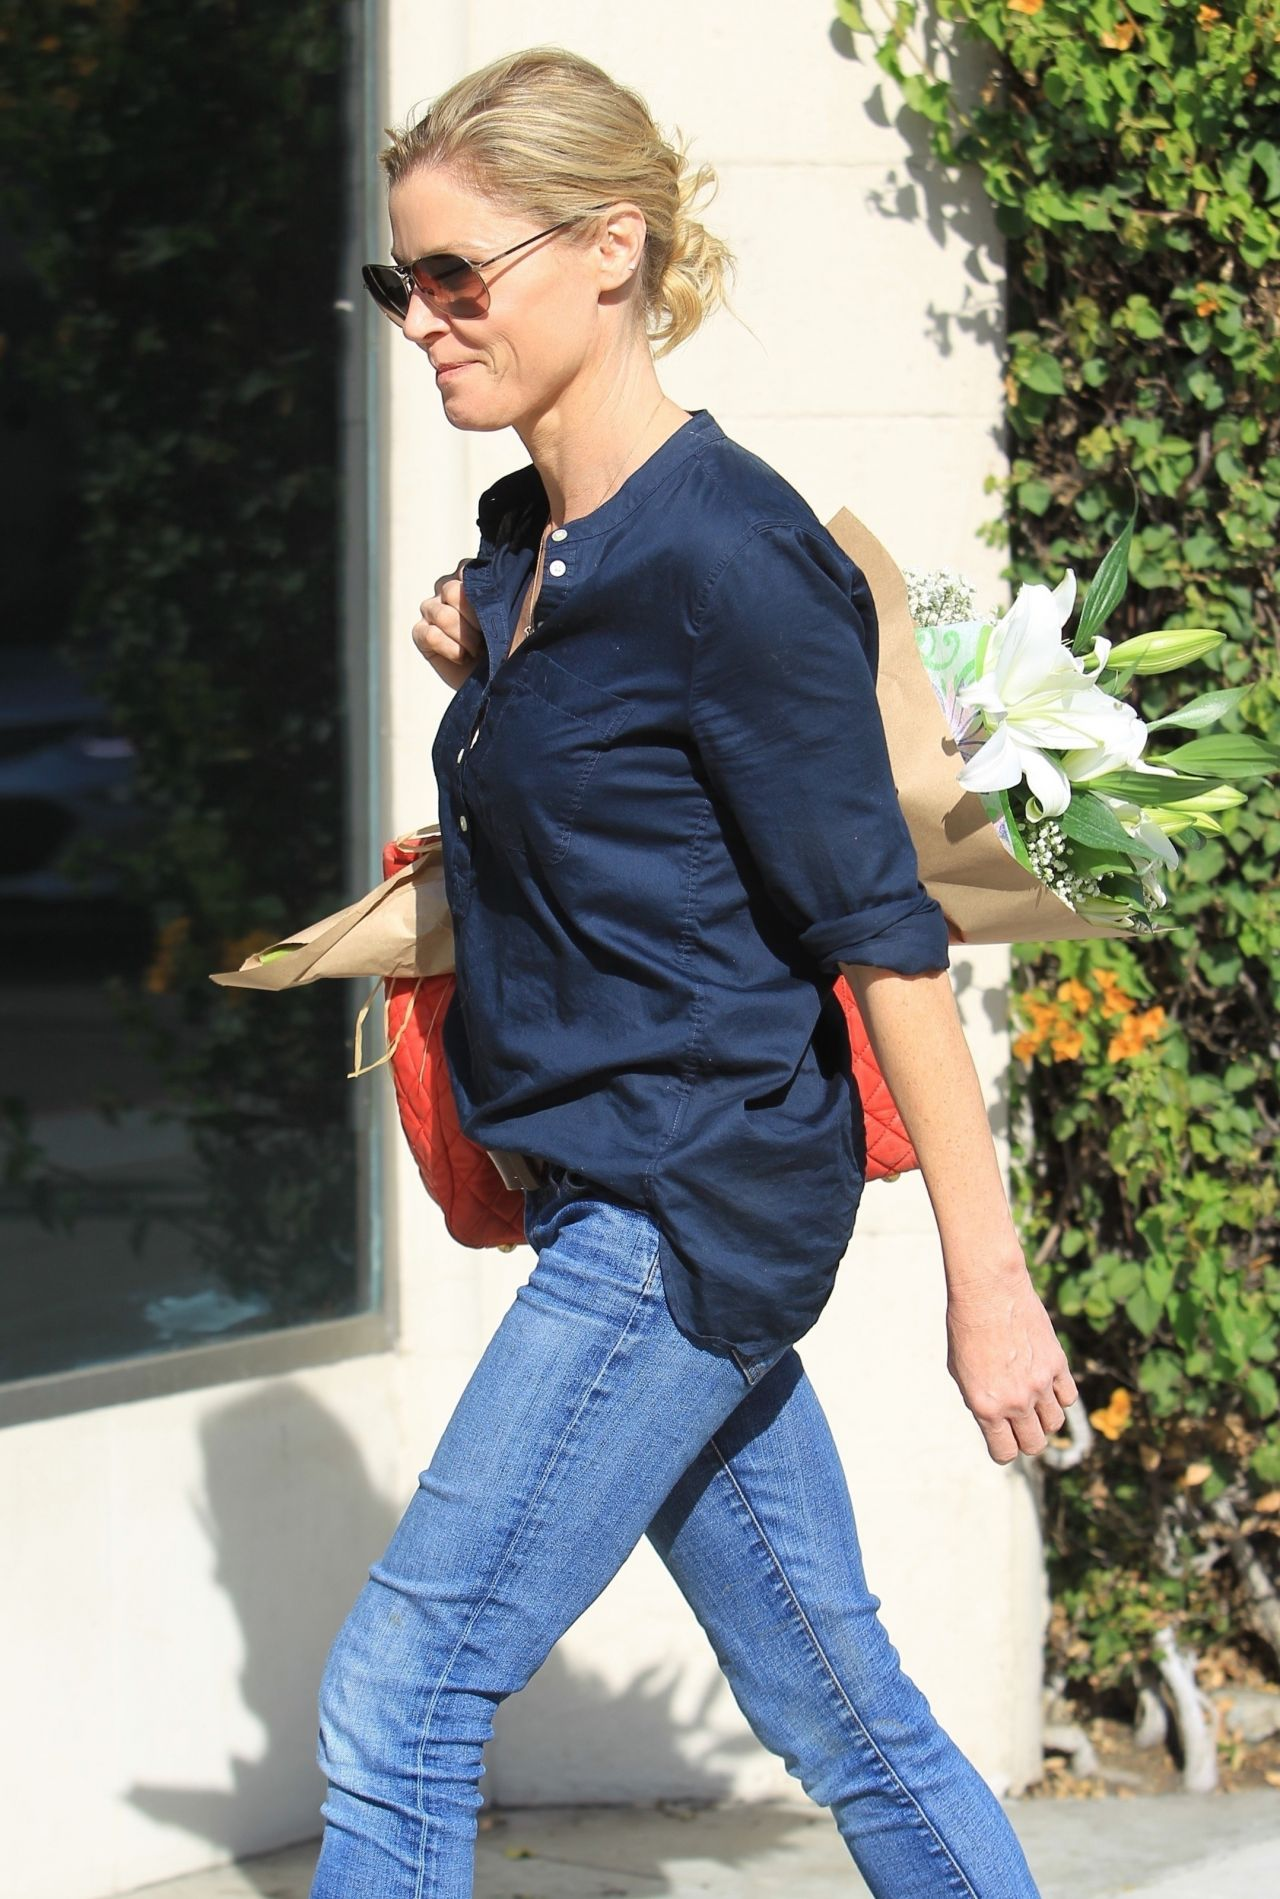 Julie Bowen In Casual Outfit Beverly Hills 01 18 2018